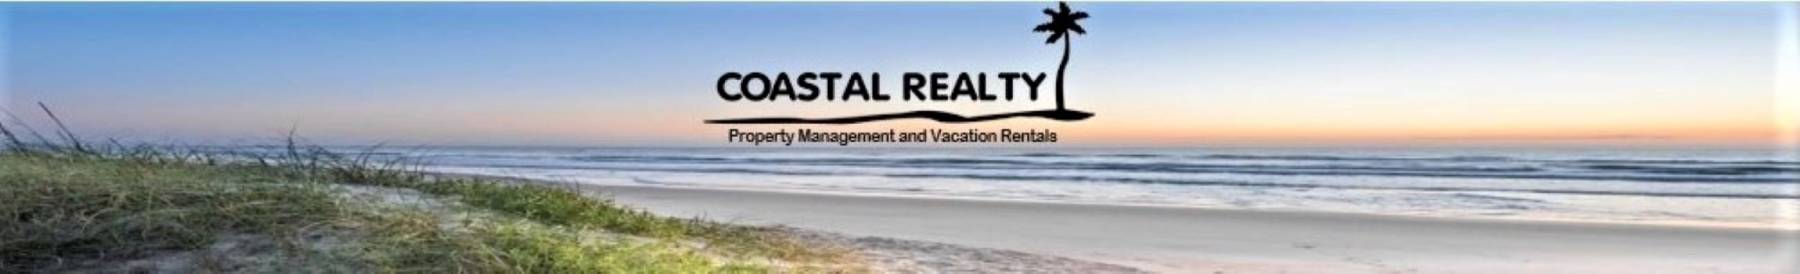 Coastal Realty Vacation Rentals